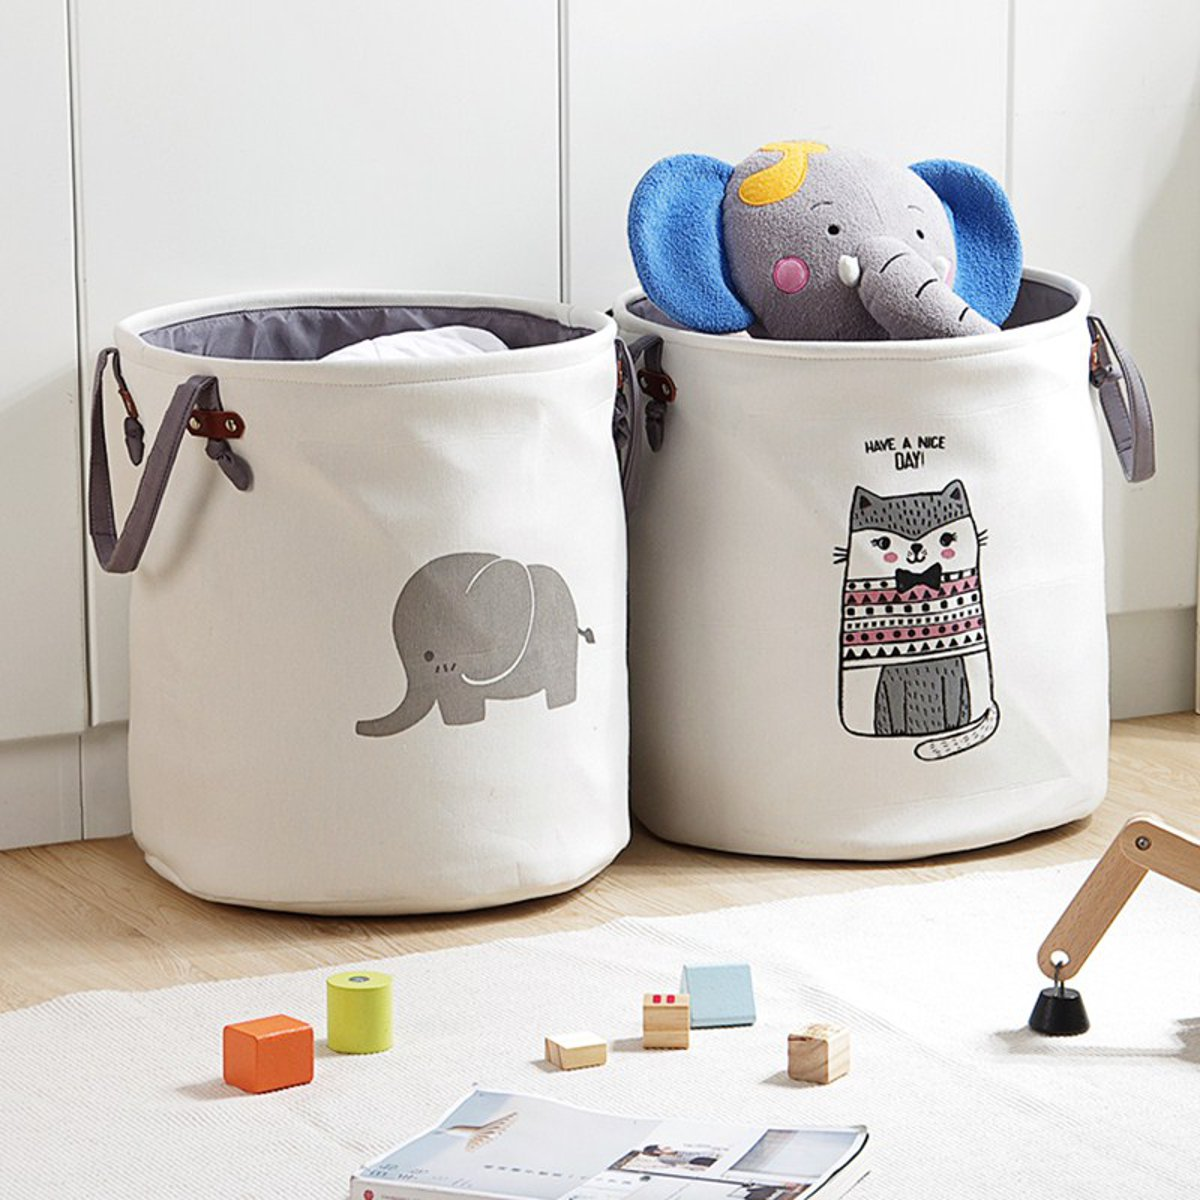 Pattern Laundry Hamper Cotton Rope Woven Handbag Canvas Laundry Basket Storage Bag Baby Toys Bin